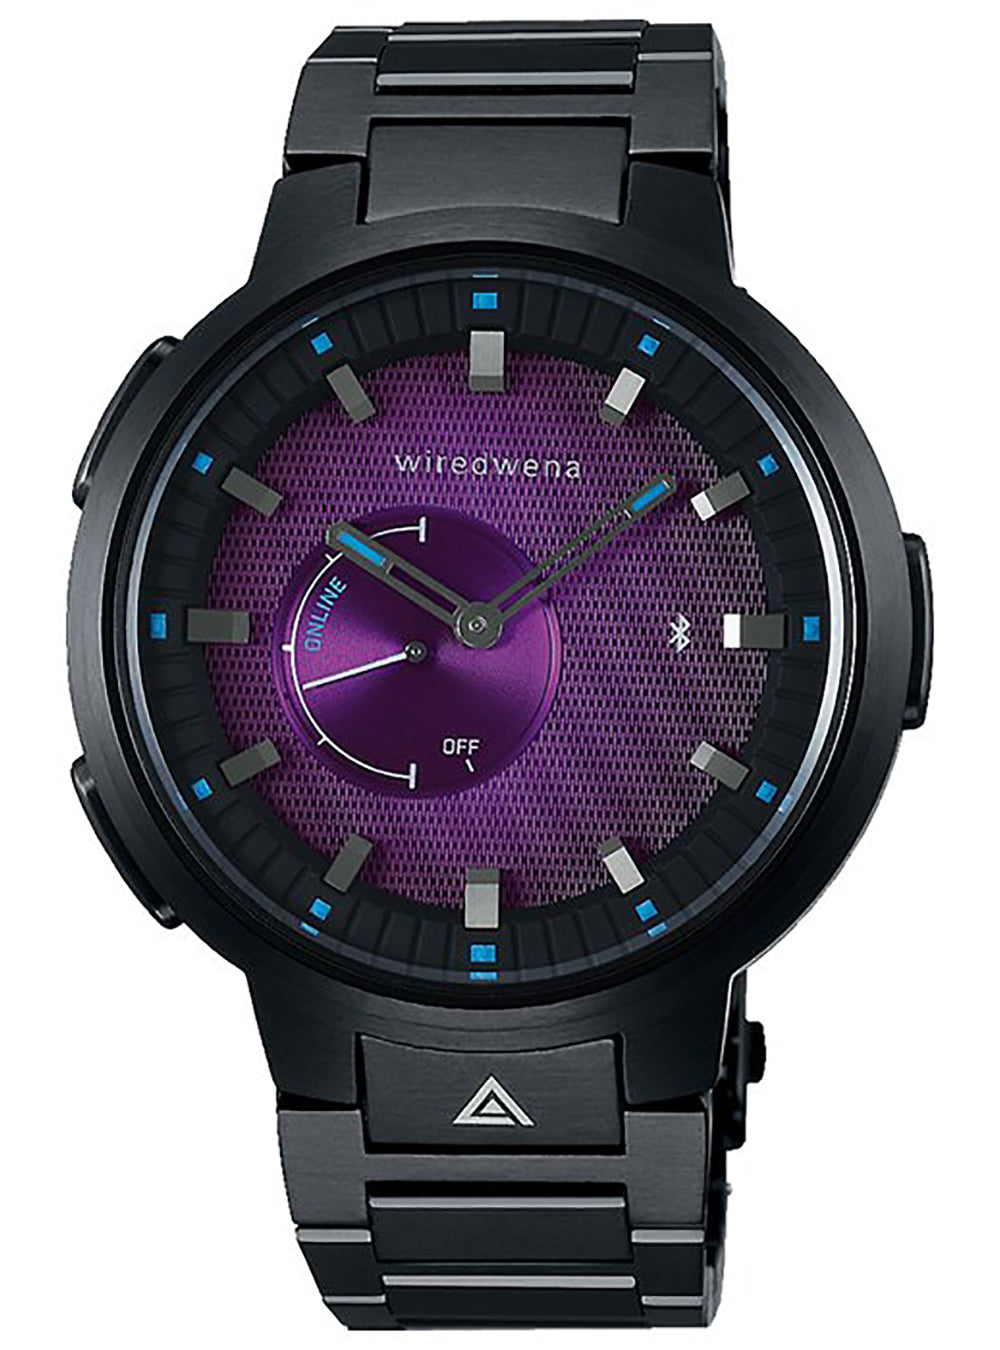 SEIKO×SONY WIREDWENA GHOST IN THE SHELL SAC_2045 AGAB703 MOTOKO KUSANAGI LIMITED EDITION